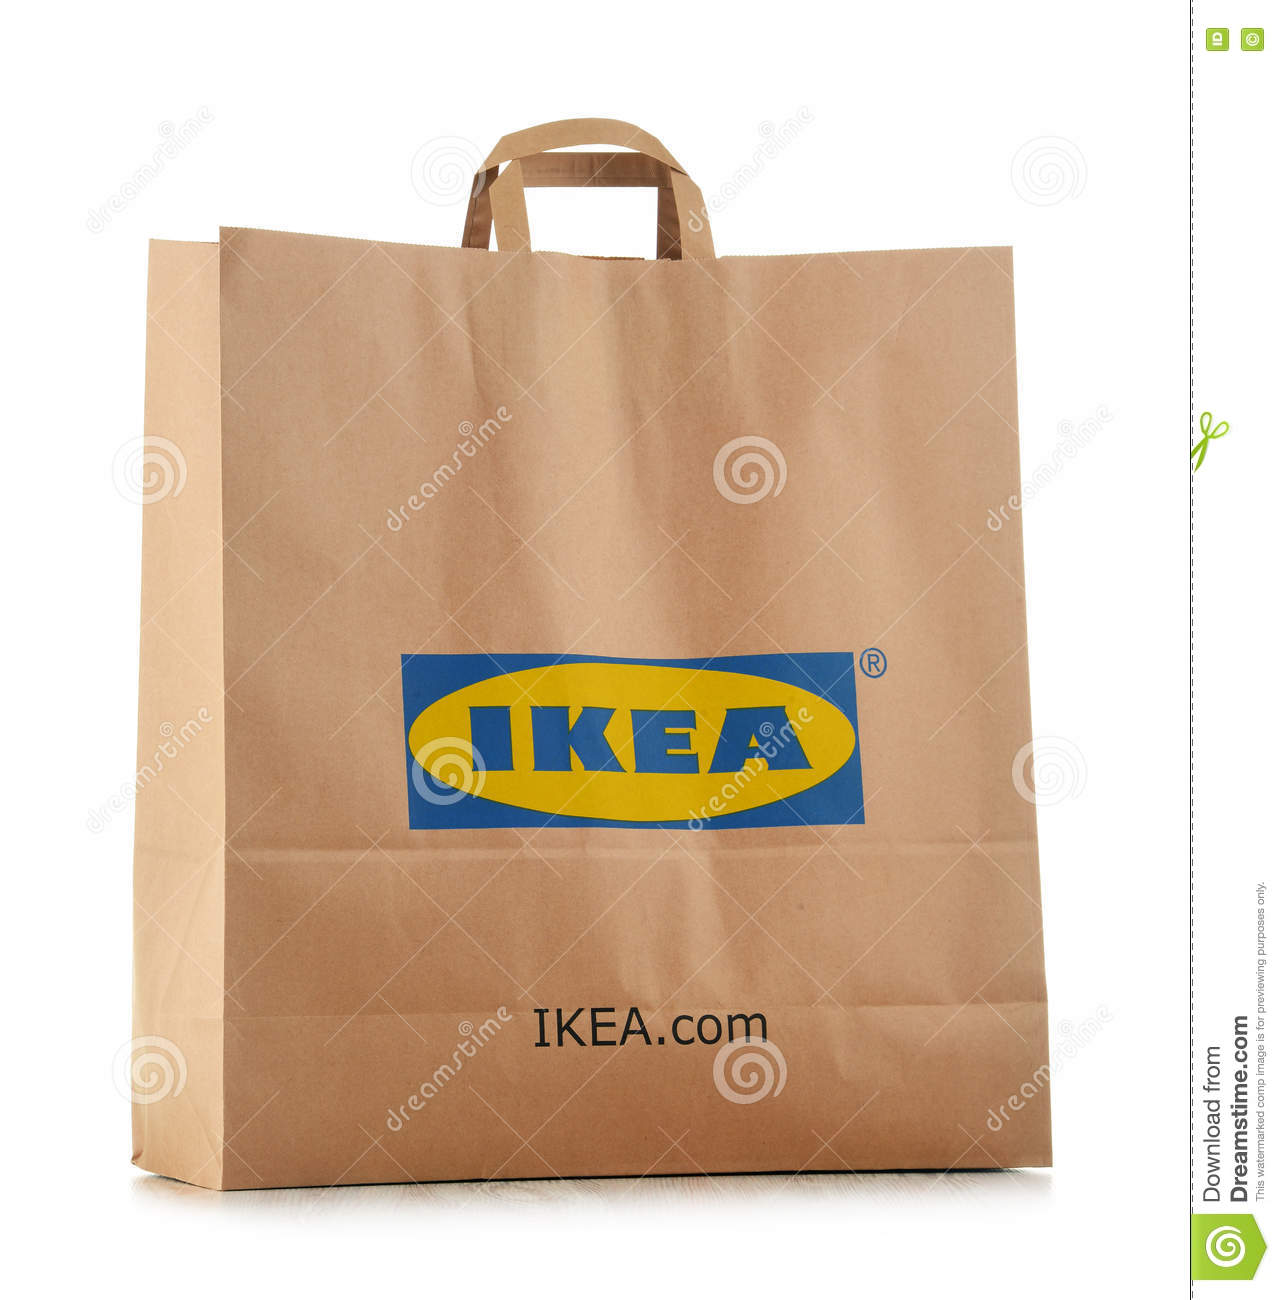 Original Pase For Ikea Pappersshopping Som Isoleras Pa Vit